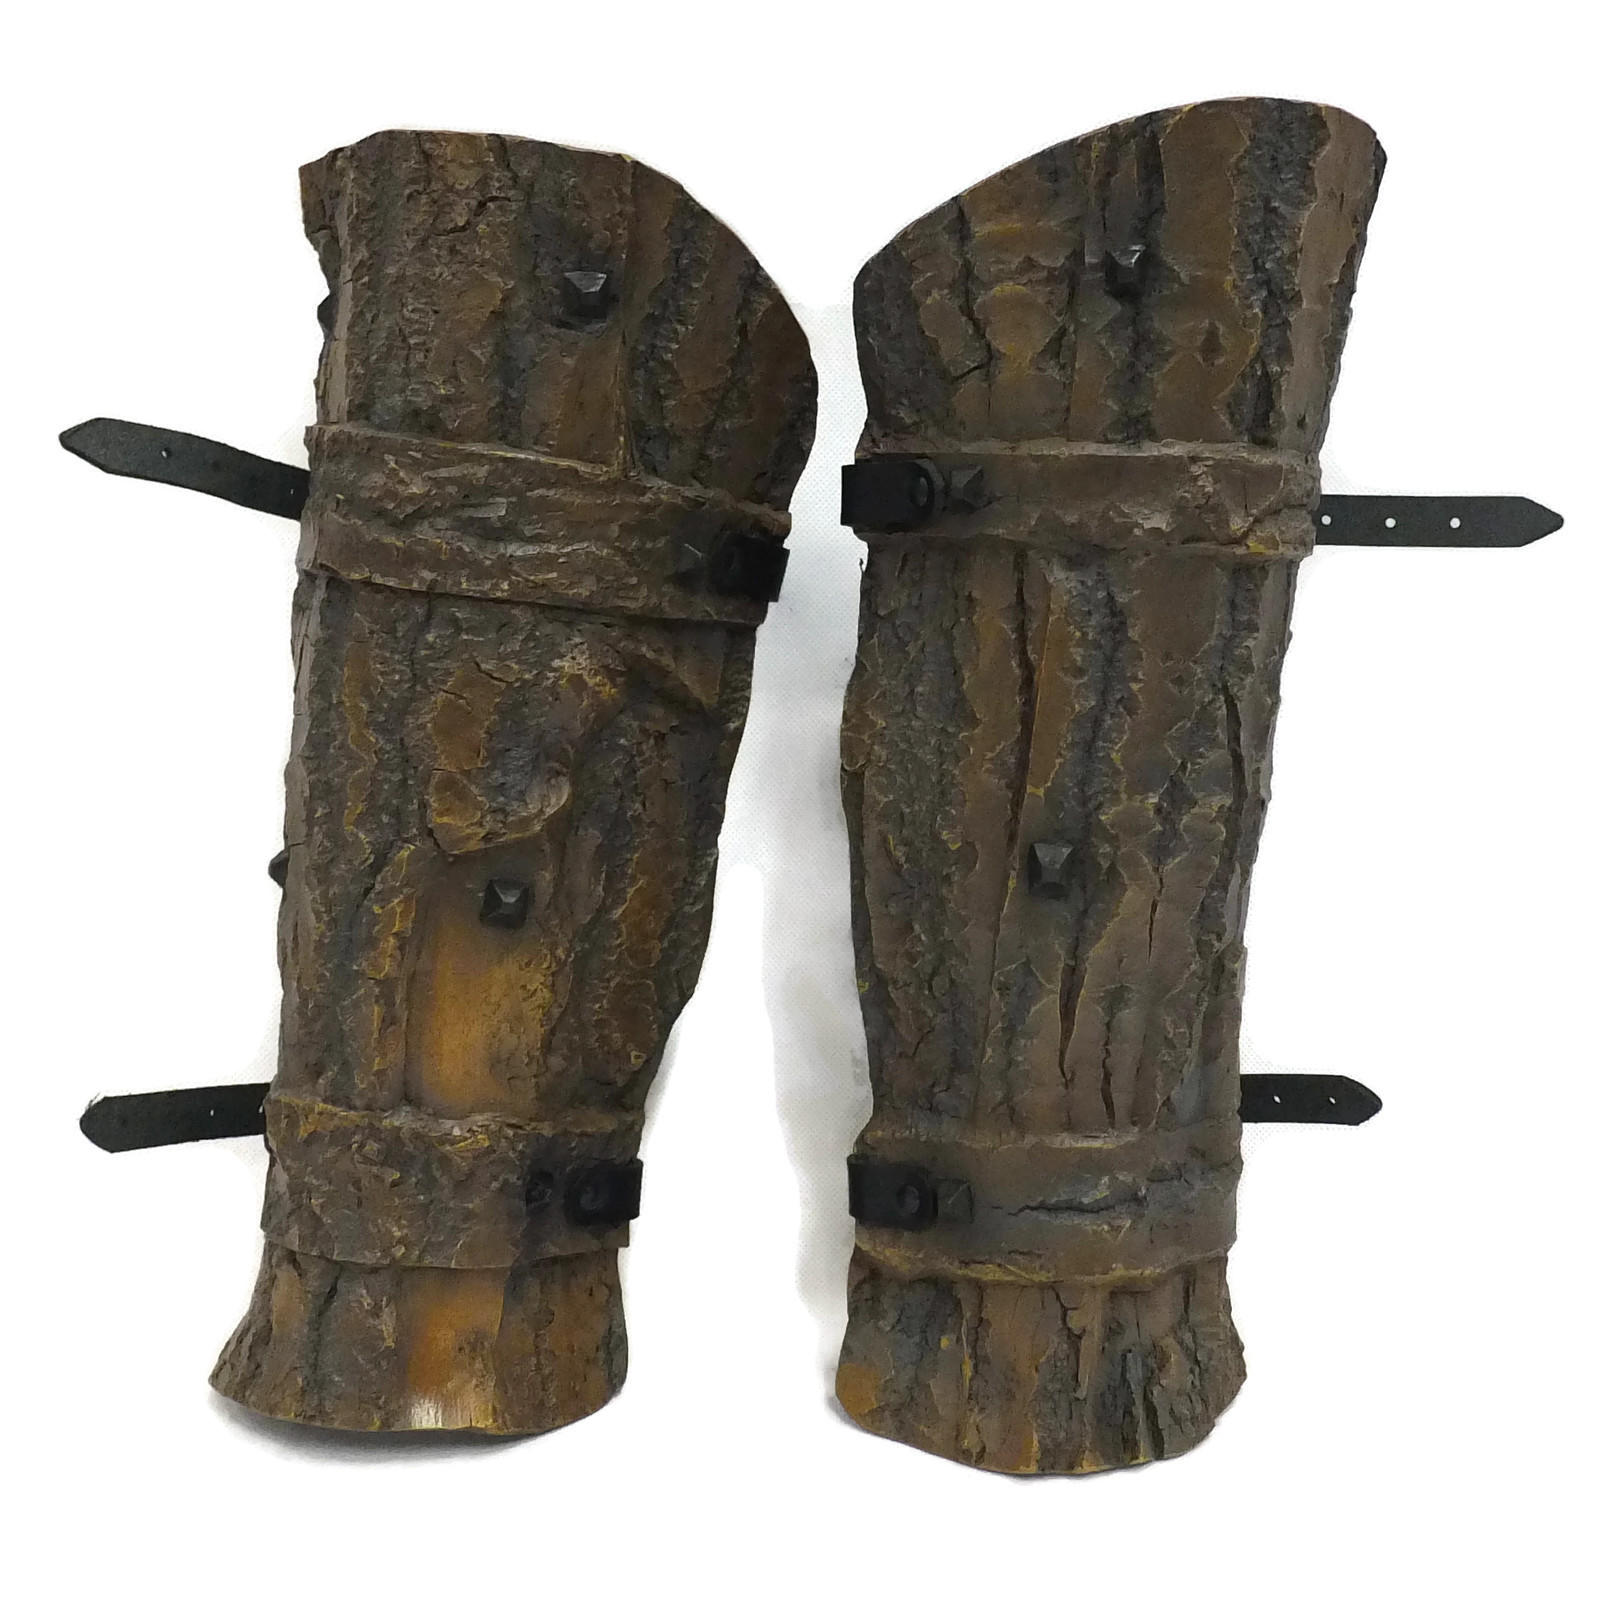 Studded bark effect larp greaves